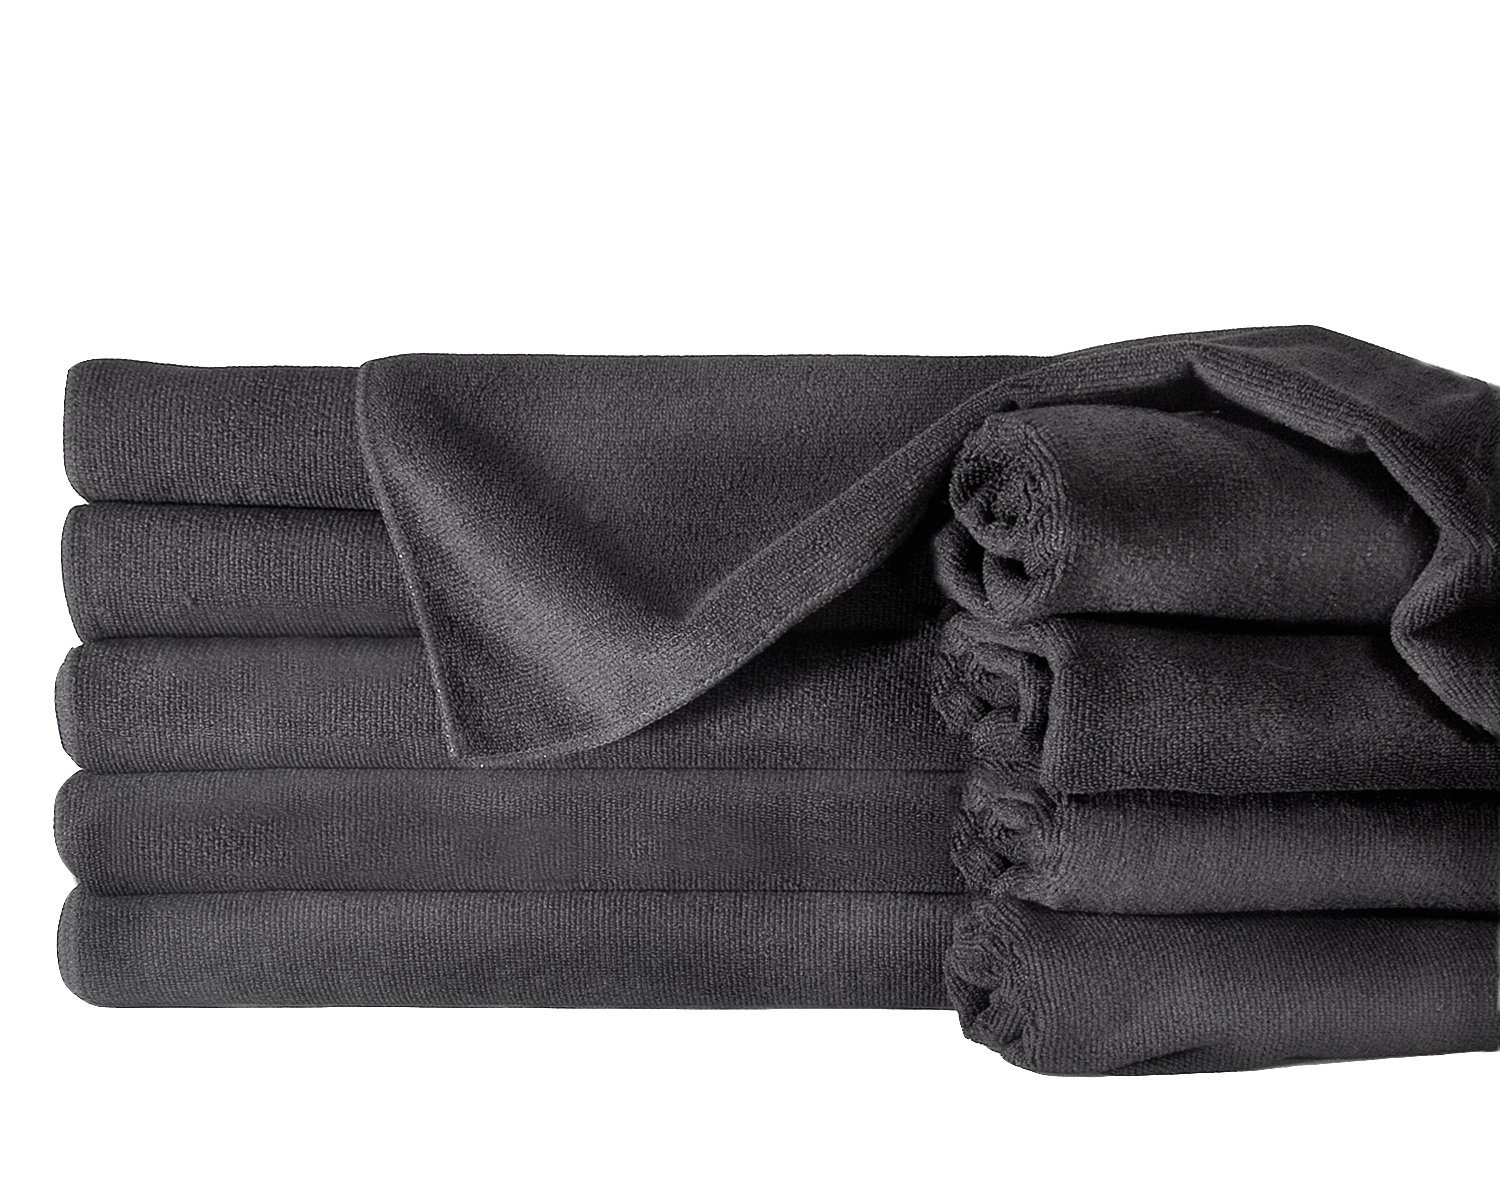 Towels by Doctor Joe ULTRA-15BLK Safe-2-Bleach Deep Black 16''x27'' Microfiber Salon Towel - Pack of 12